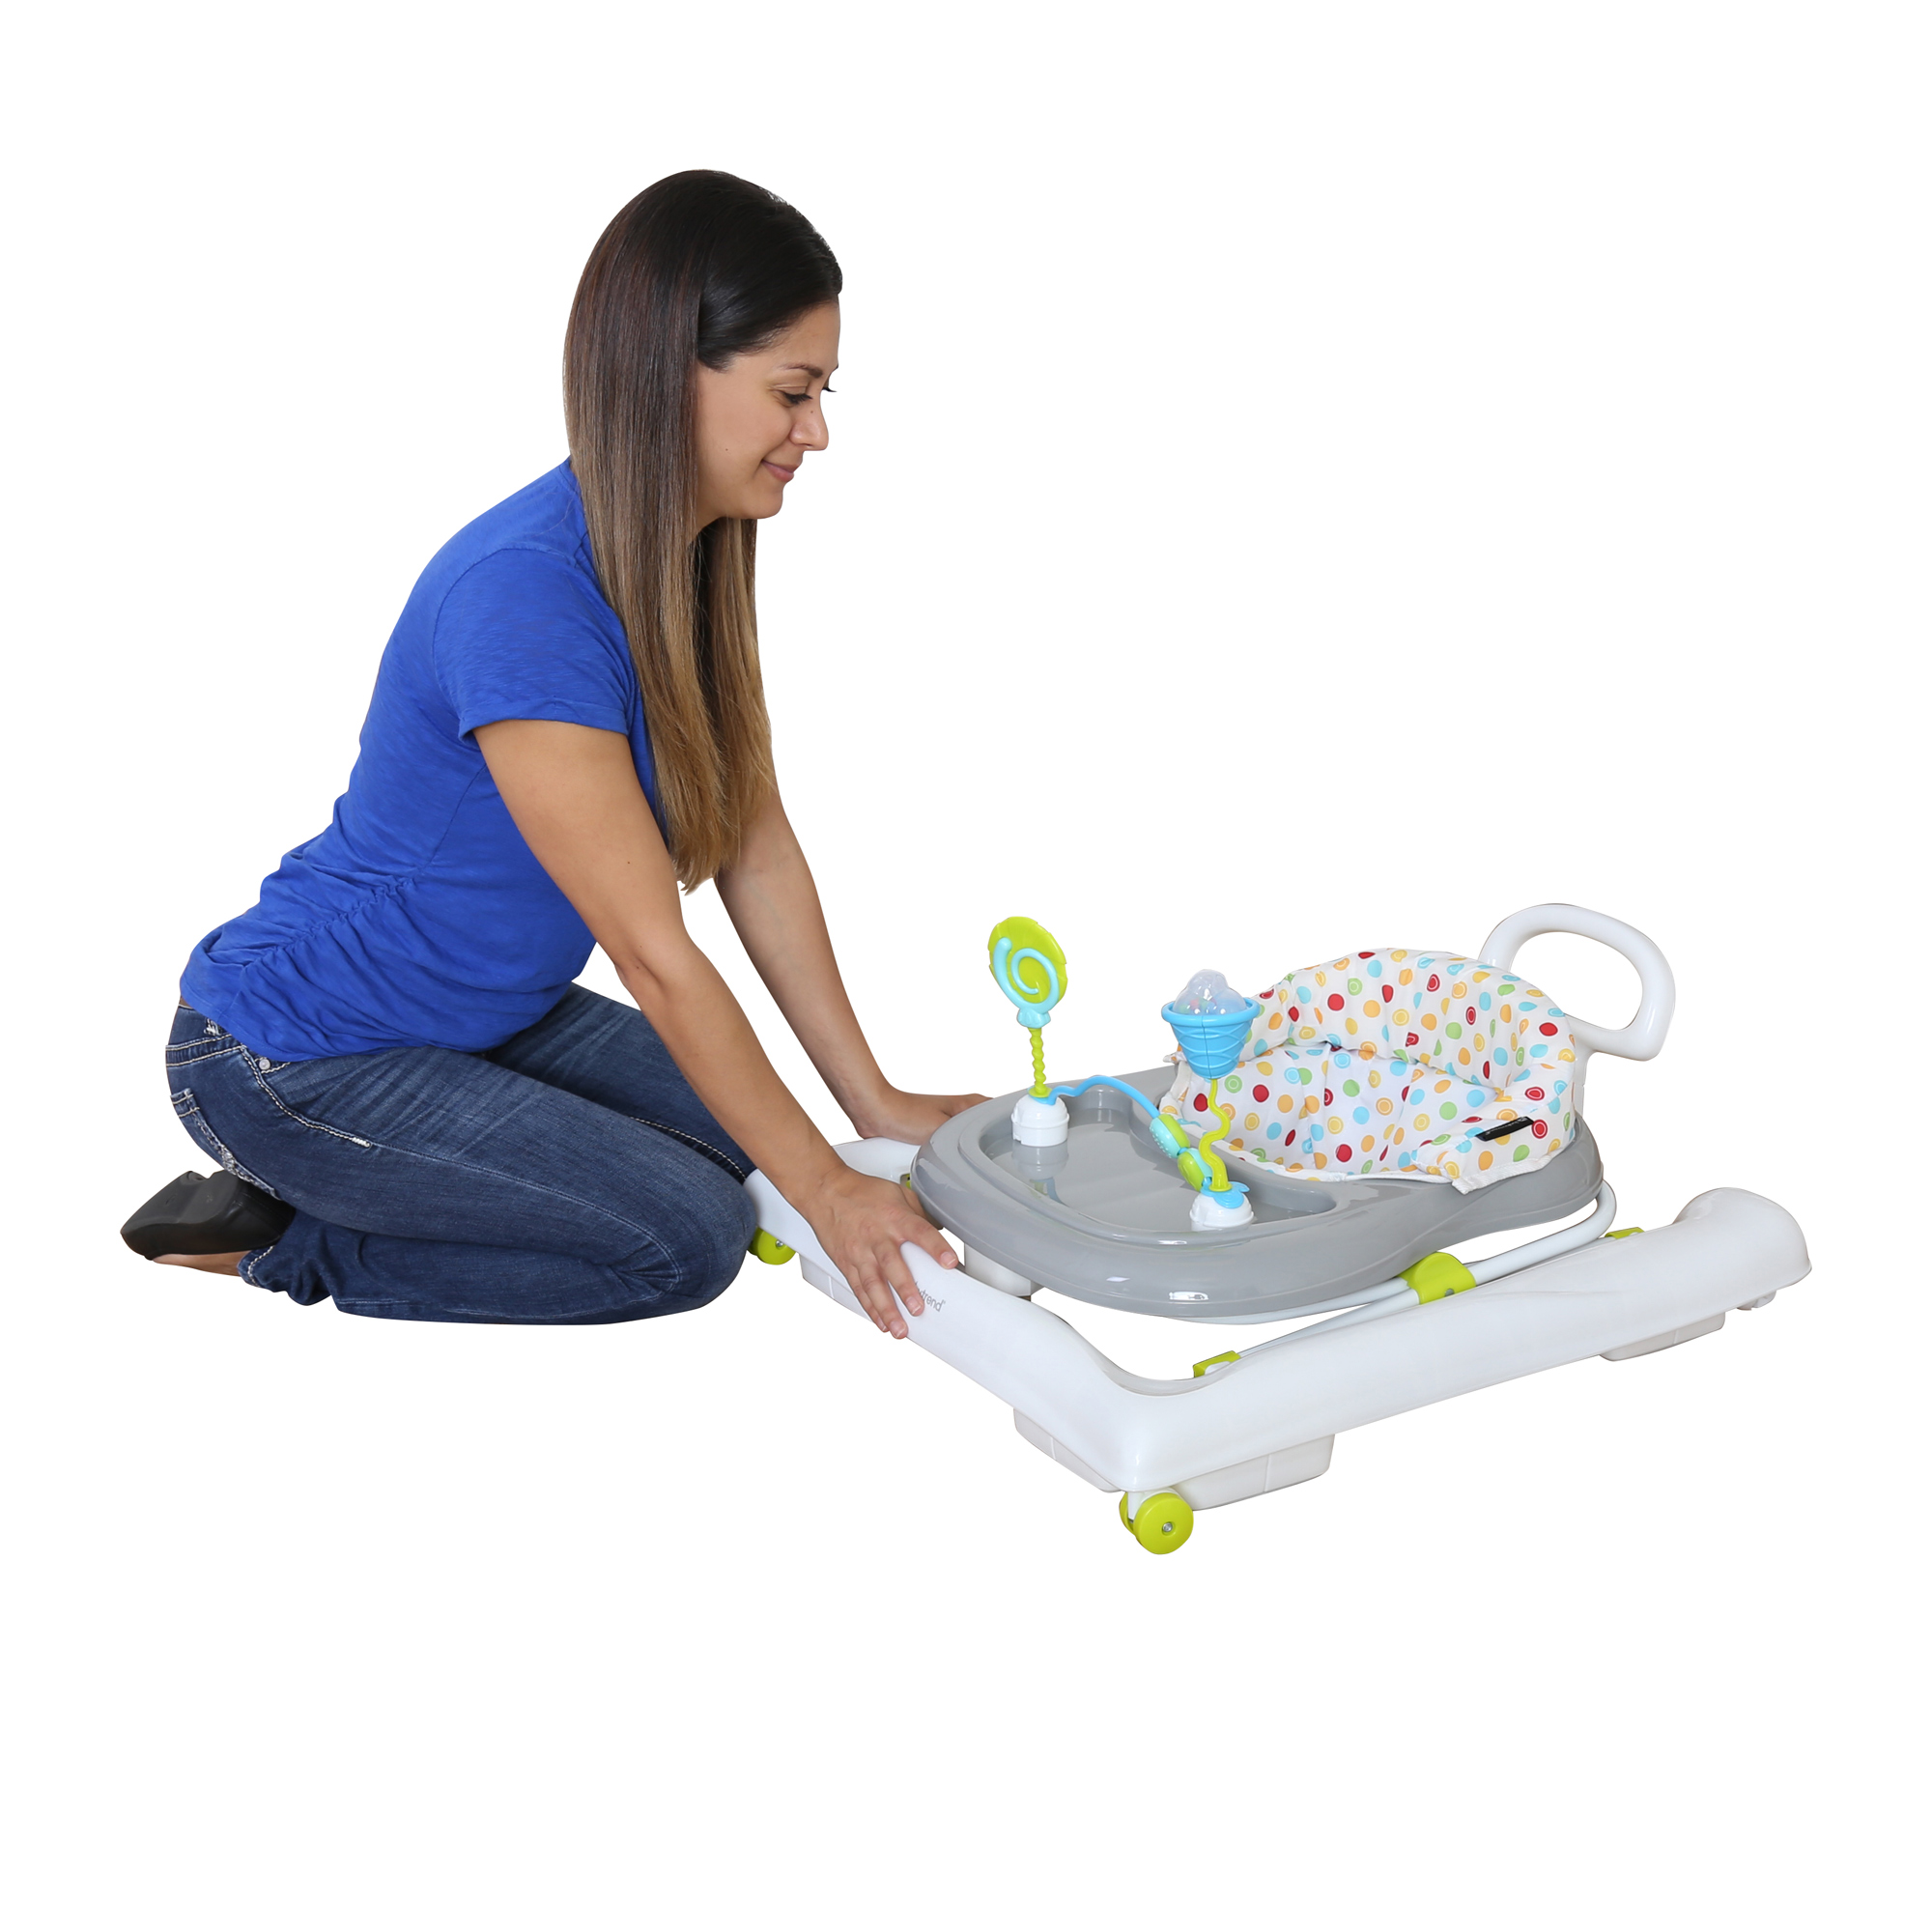 8b1ed2f1f Baby Trend 3.0 Activity Walker- Sprinkles - Walmart.com